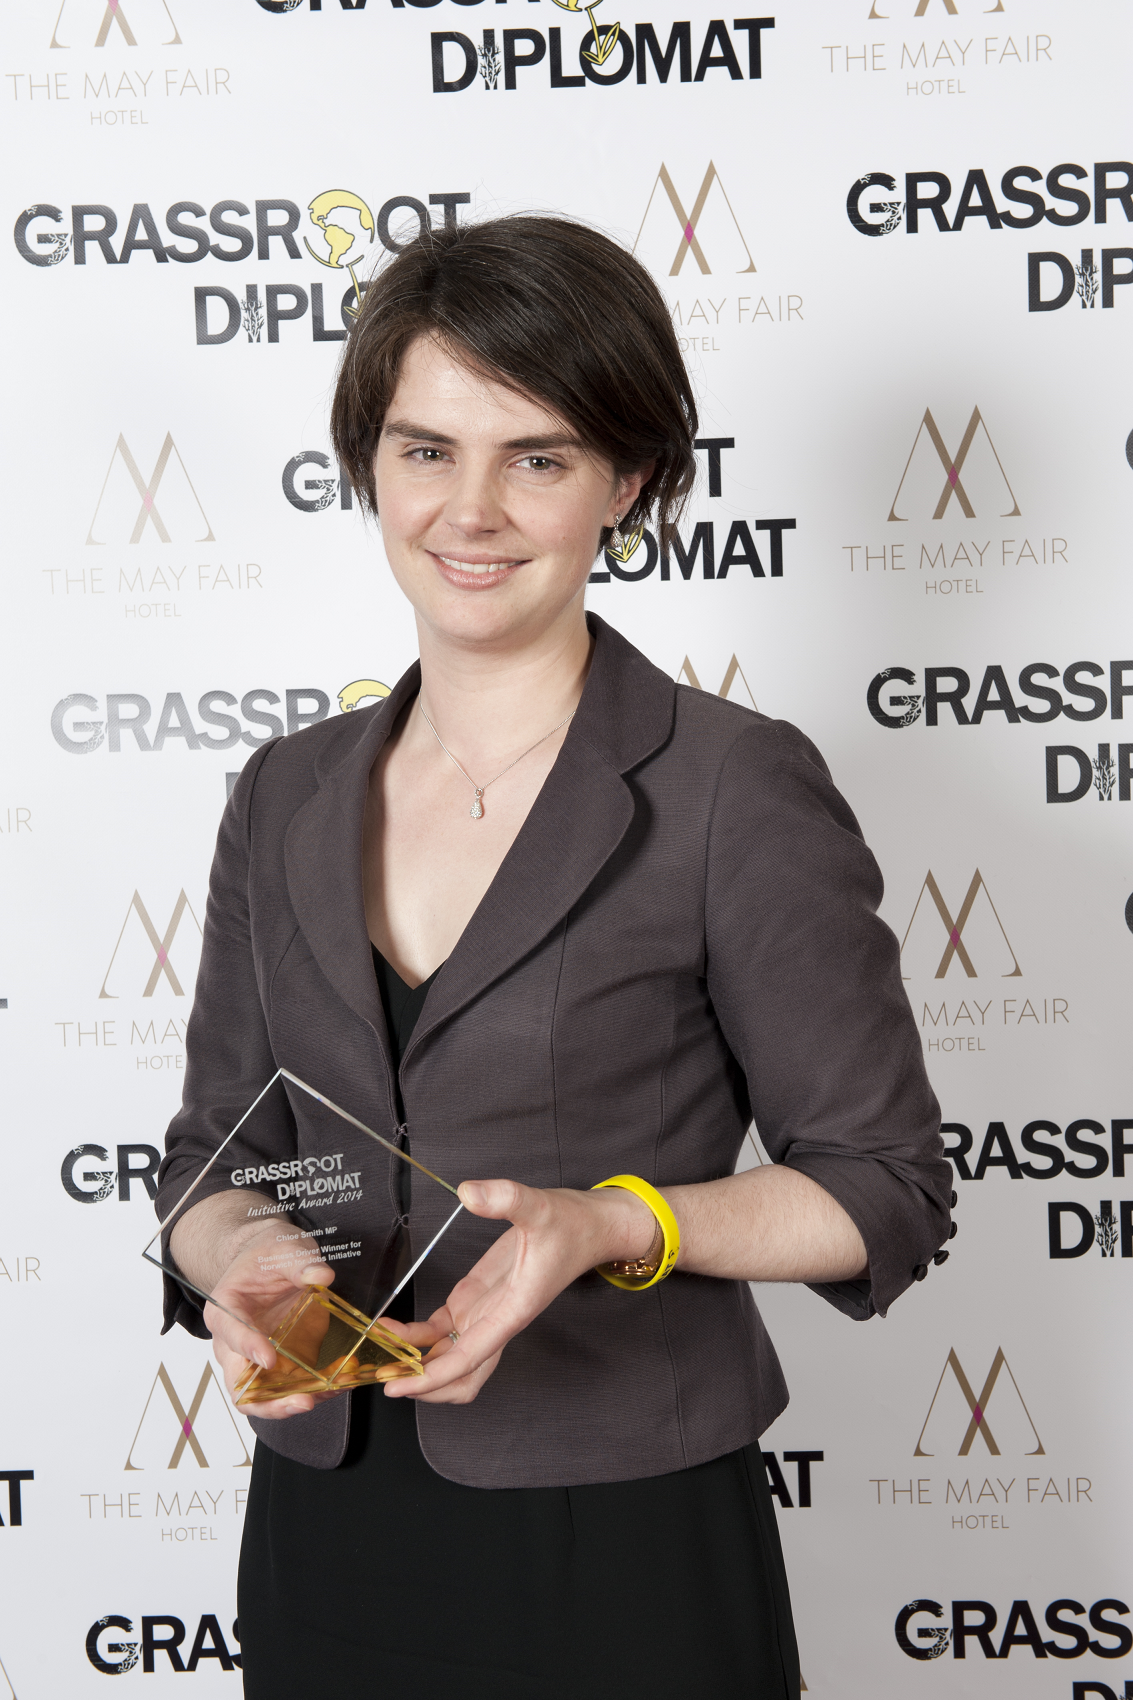 """CHLOE SMITH MP - NORWICH NORTH, CONSERVATIVEBUSINESS DRIVER WINNER: NORWICH FOR JOBS CAMPAIGN2014Chloe Smith MP of Norwich North conceived and designed the Norwich for Jobs campaign, bringing together a team from local firms to the Chambers of Commerce and charities to create jobs for young people. Since its launch in January 2013, Norwich for Jobs has directly brought about over 400 jobs and apprenticeships for Norwich young people by providing businesses with the confidence to open jobs and breaking the stereotype of the """"lazy"""" youth on Jobseeker's Allowance."""